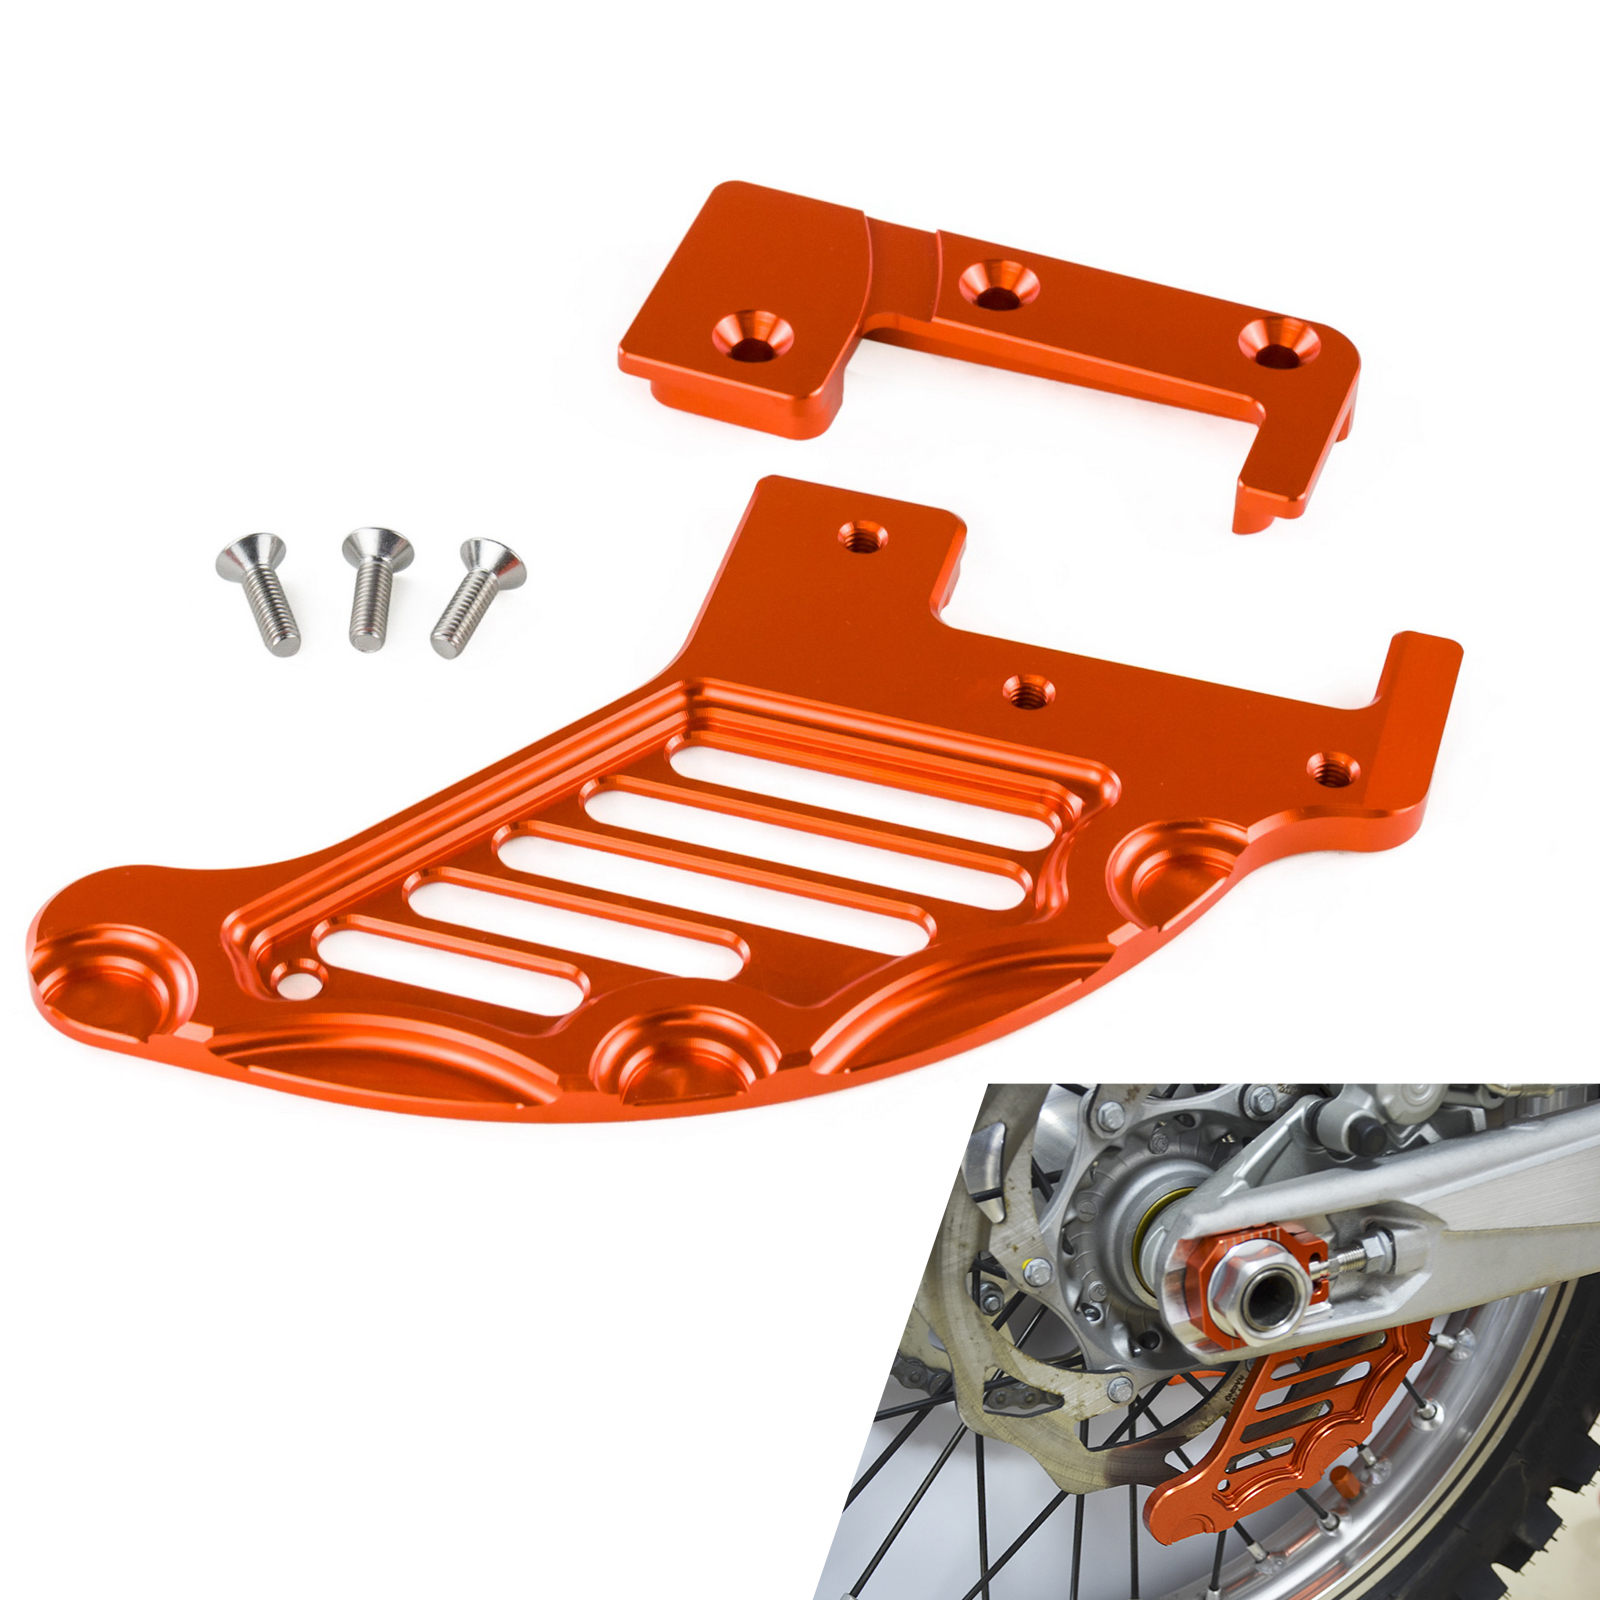 Rear Brake Disc Guard For KTM SX SXF EXC EXCF XC XCF XCW XCFW 125 150 200 250 300 350 400 450 500 505 530 2004-2017 2018 2019 image